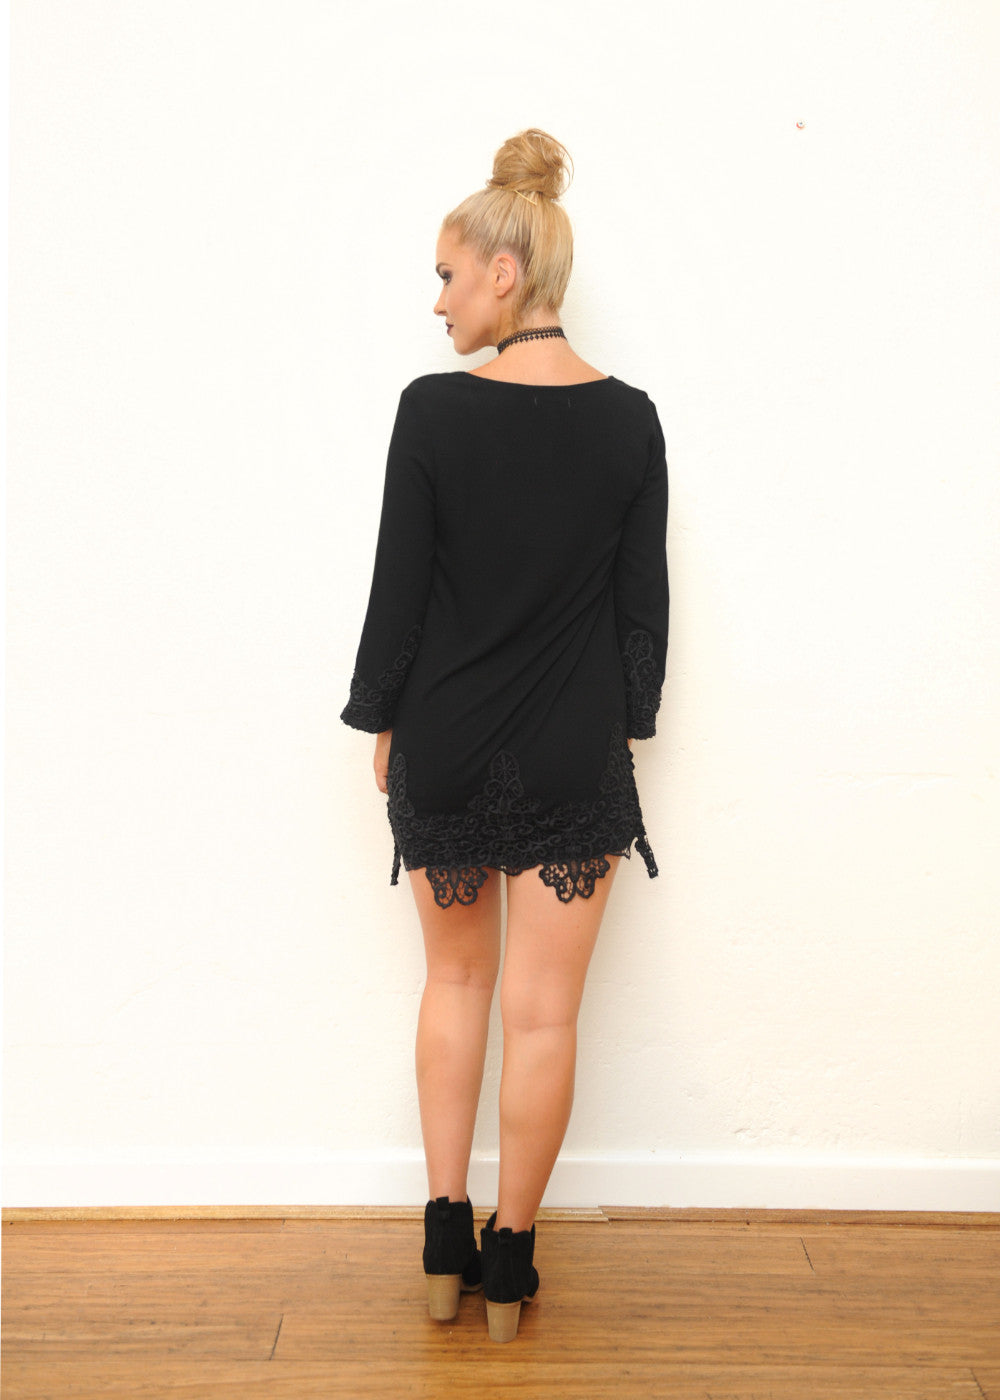 Fern Dress - Black